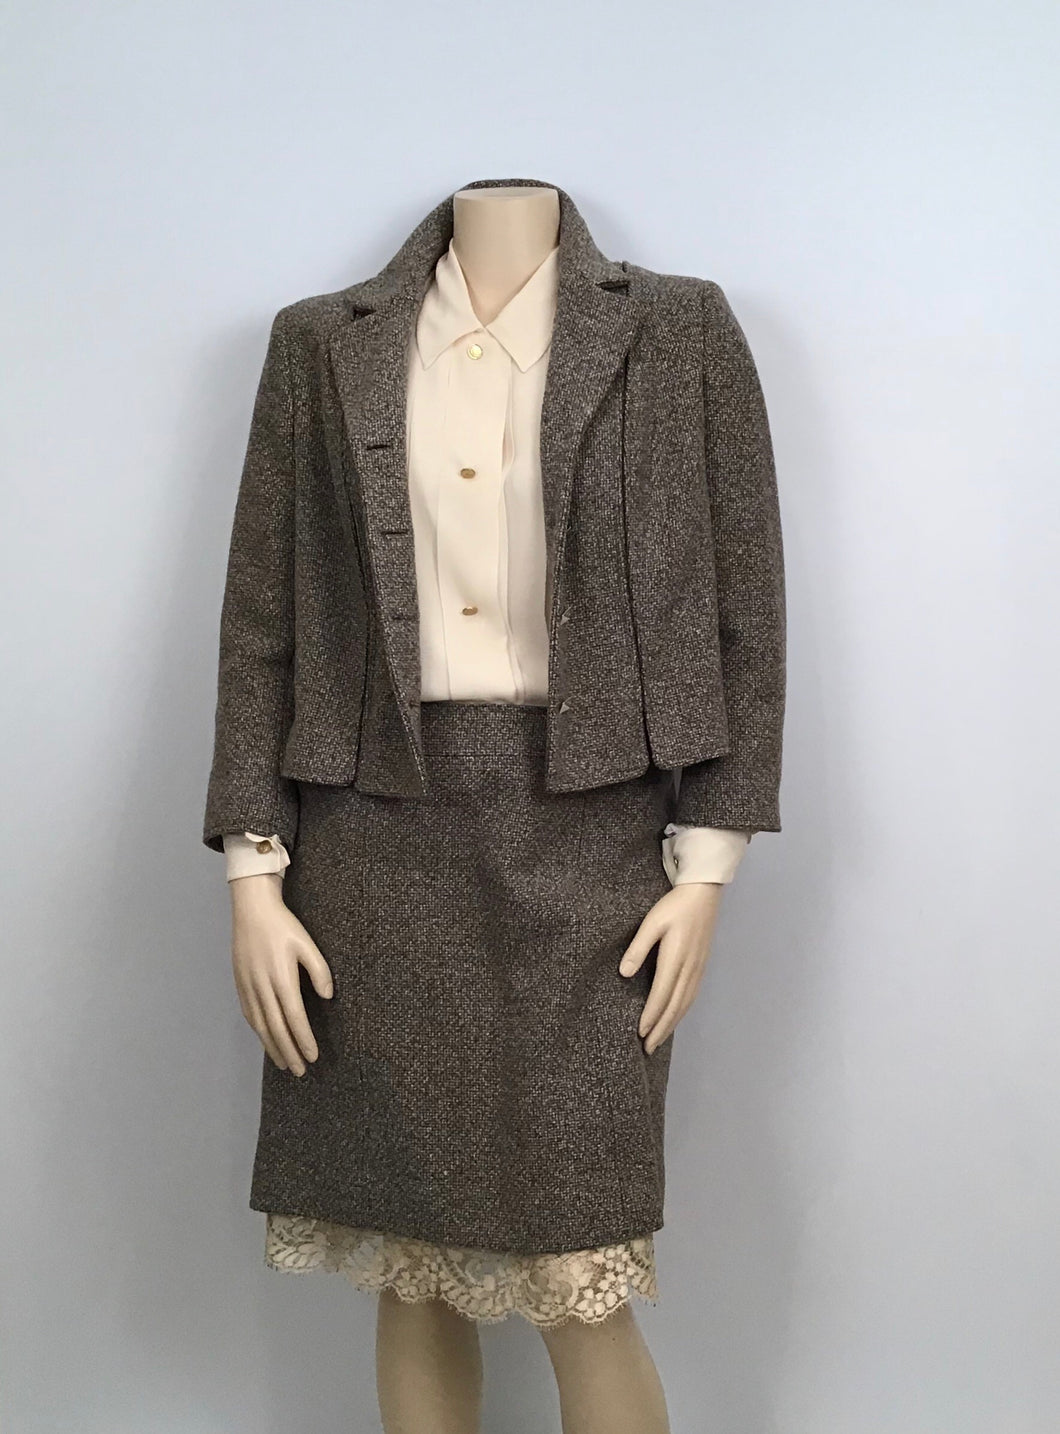 Chanel Vintage 03A Fall Autumn Brown Tweed Lace Jacket Blazer Skirt Suit Set FR 48 US 14/16